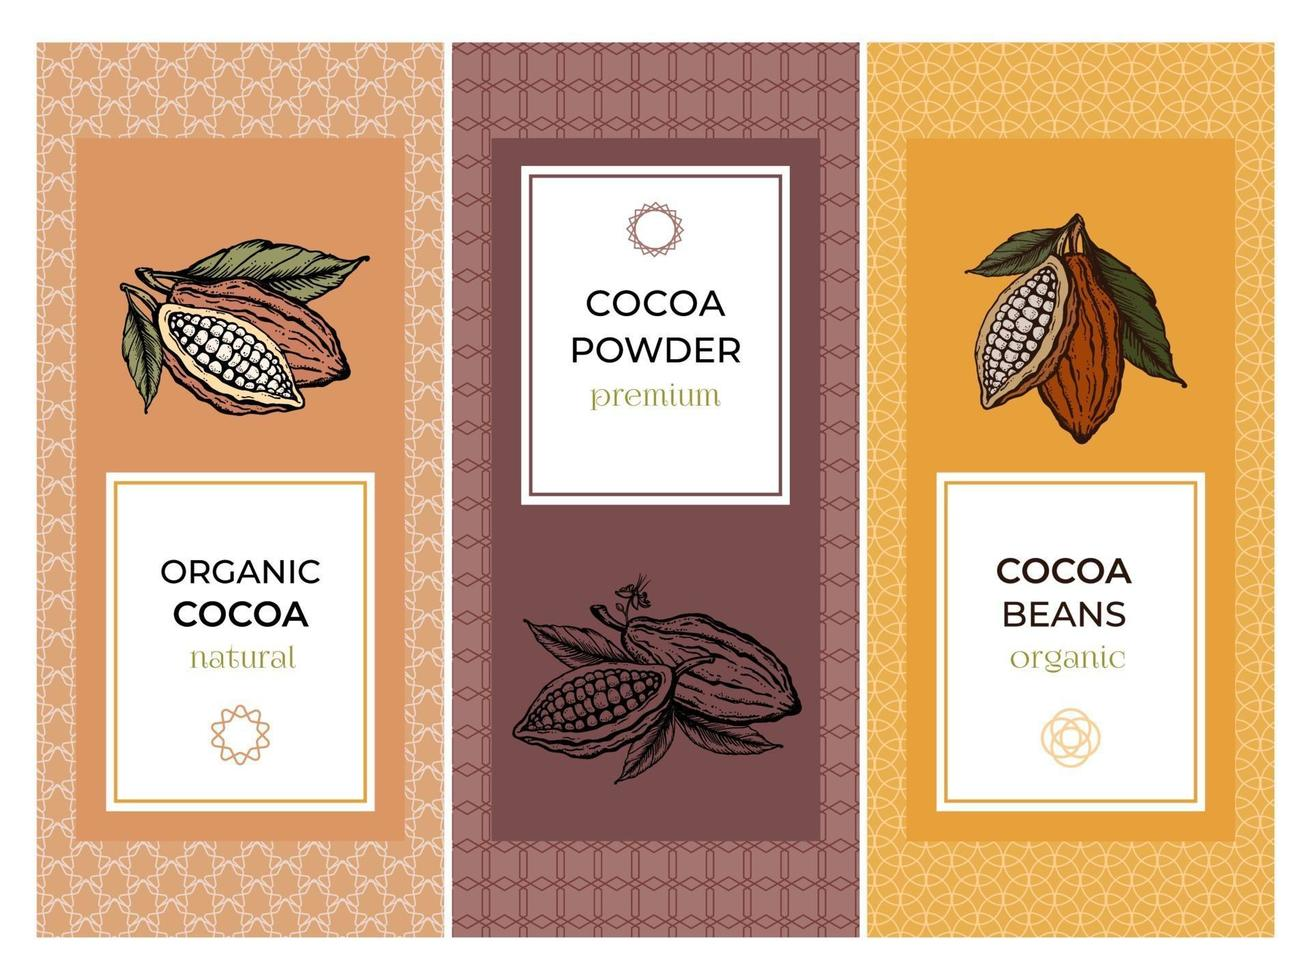 Cocoa packaging design templates set with pattern. Engraved style sketch hand drawn illustration. Cacao powder, beans, nuts, seeds, flowers and leaves vector. vector